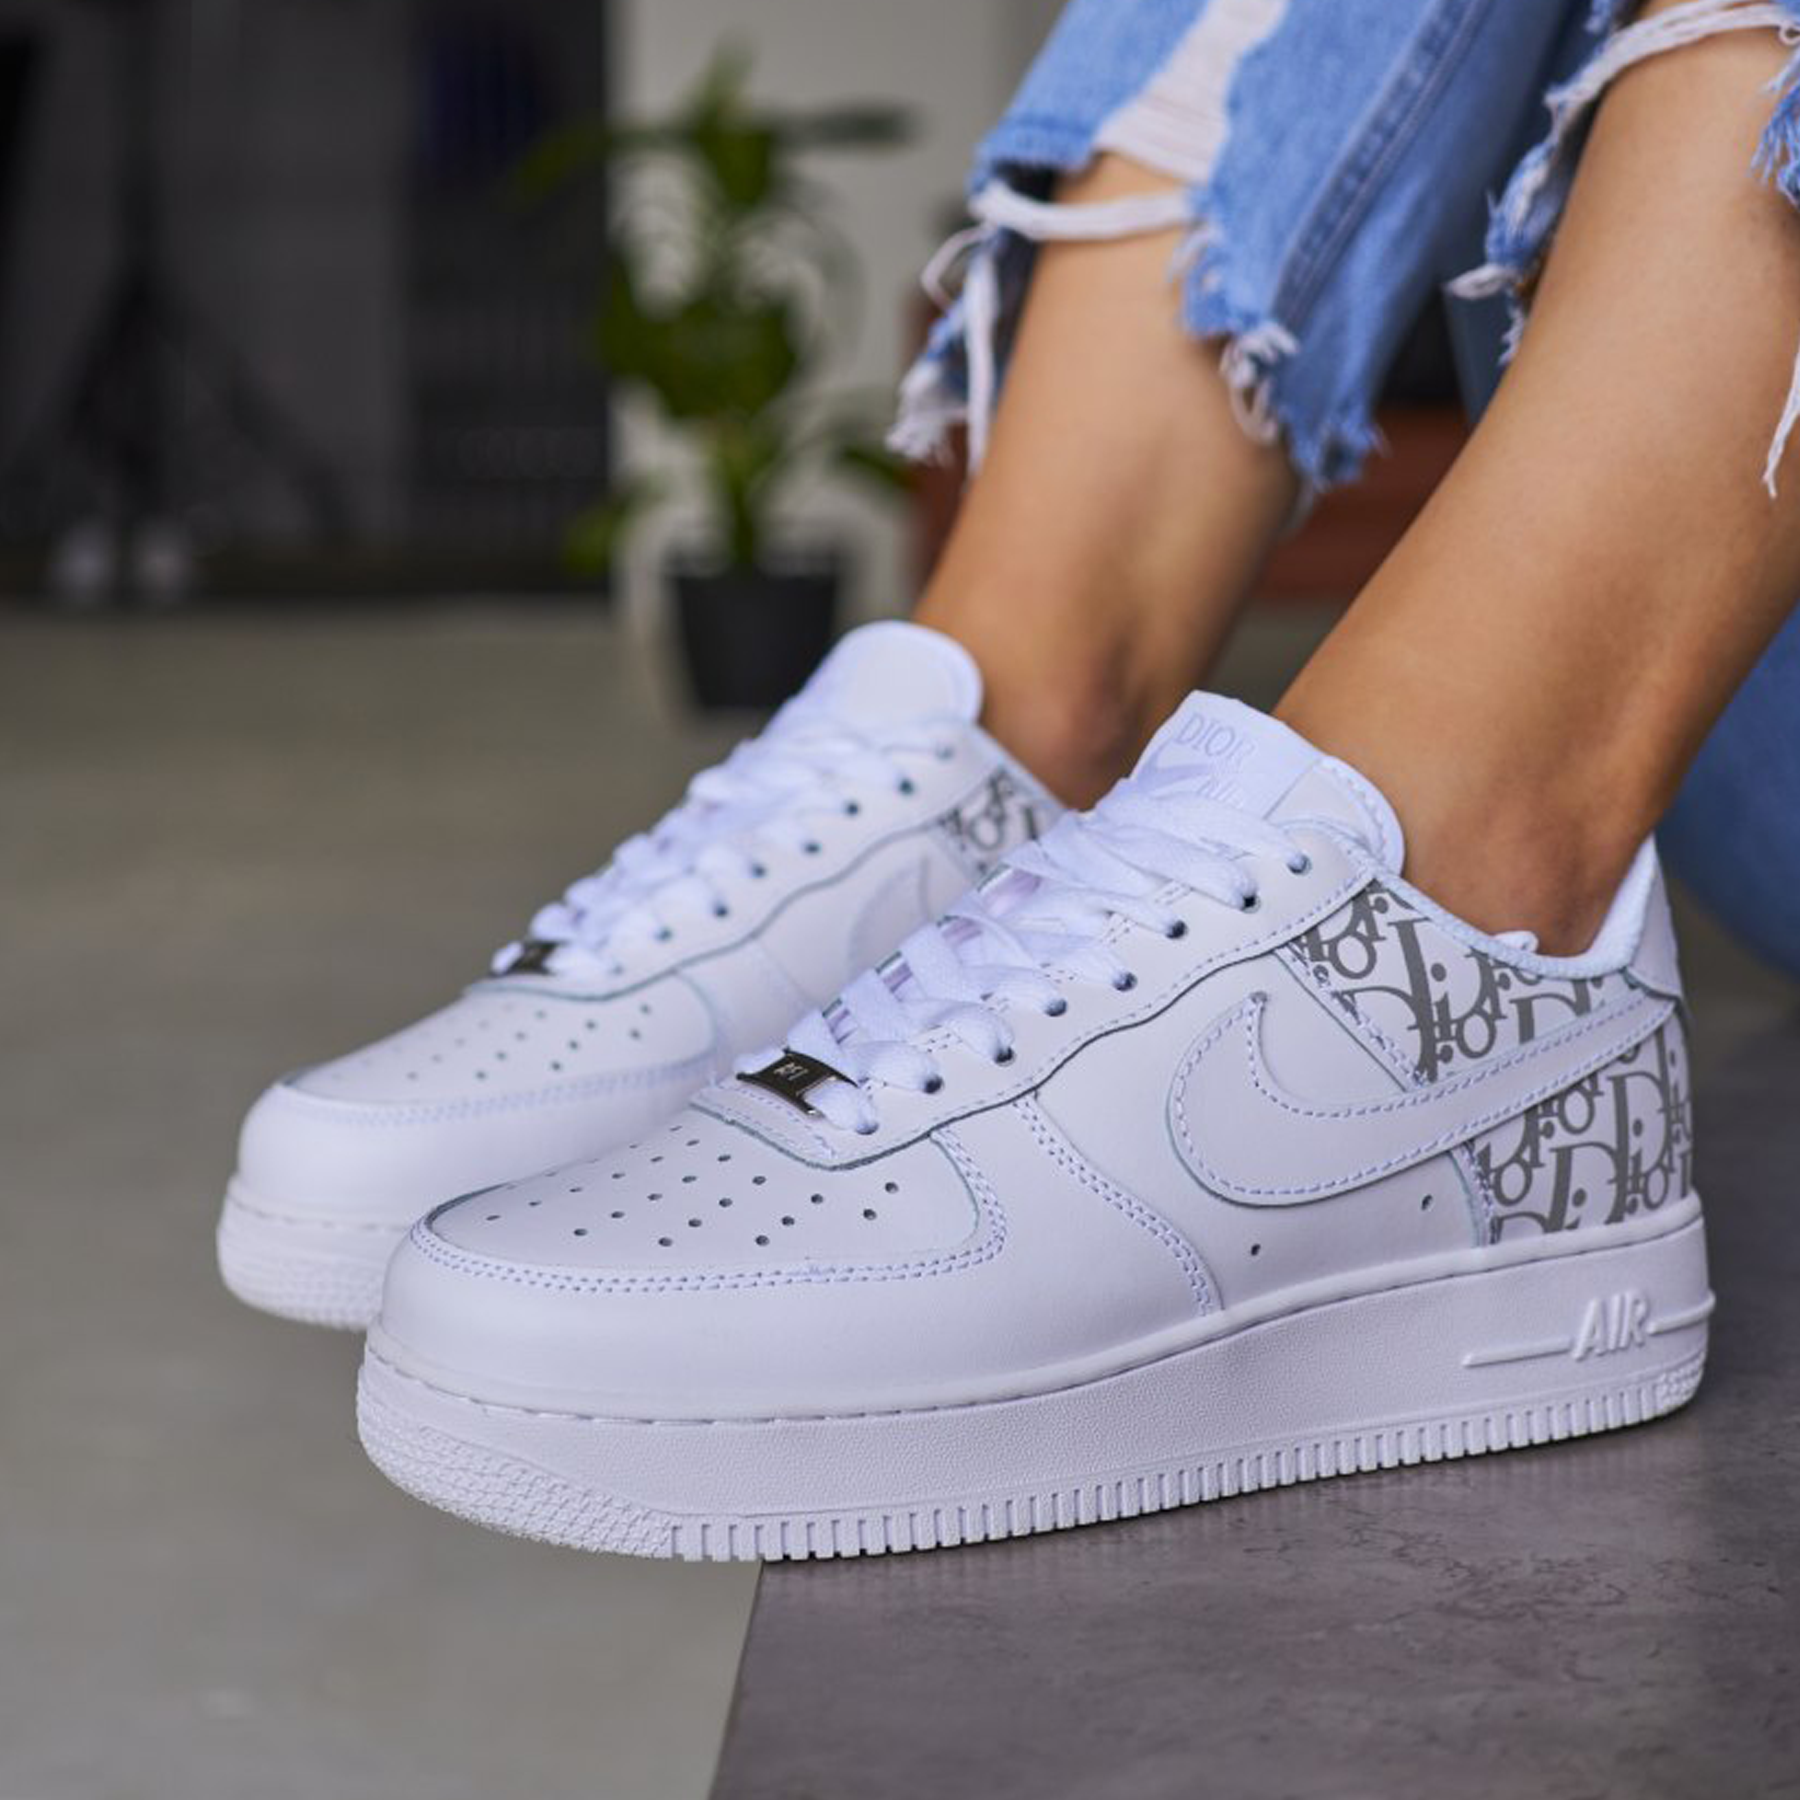 Кроссовки женские Dior x Nike air force 1 low white grey premium